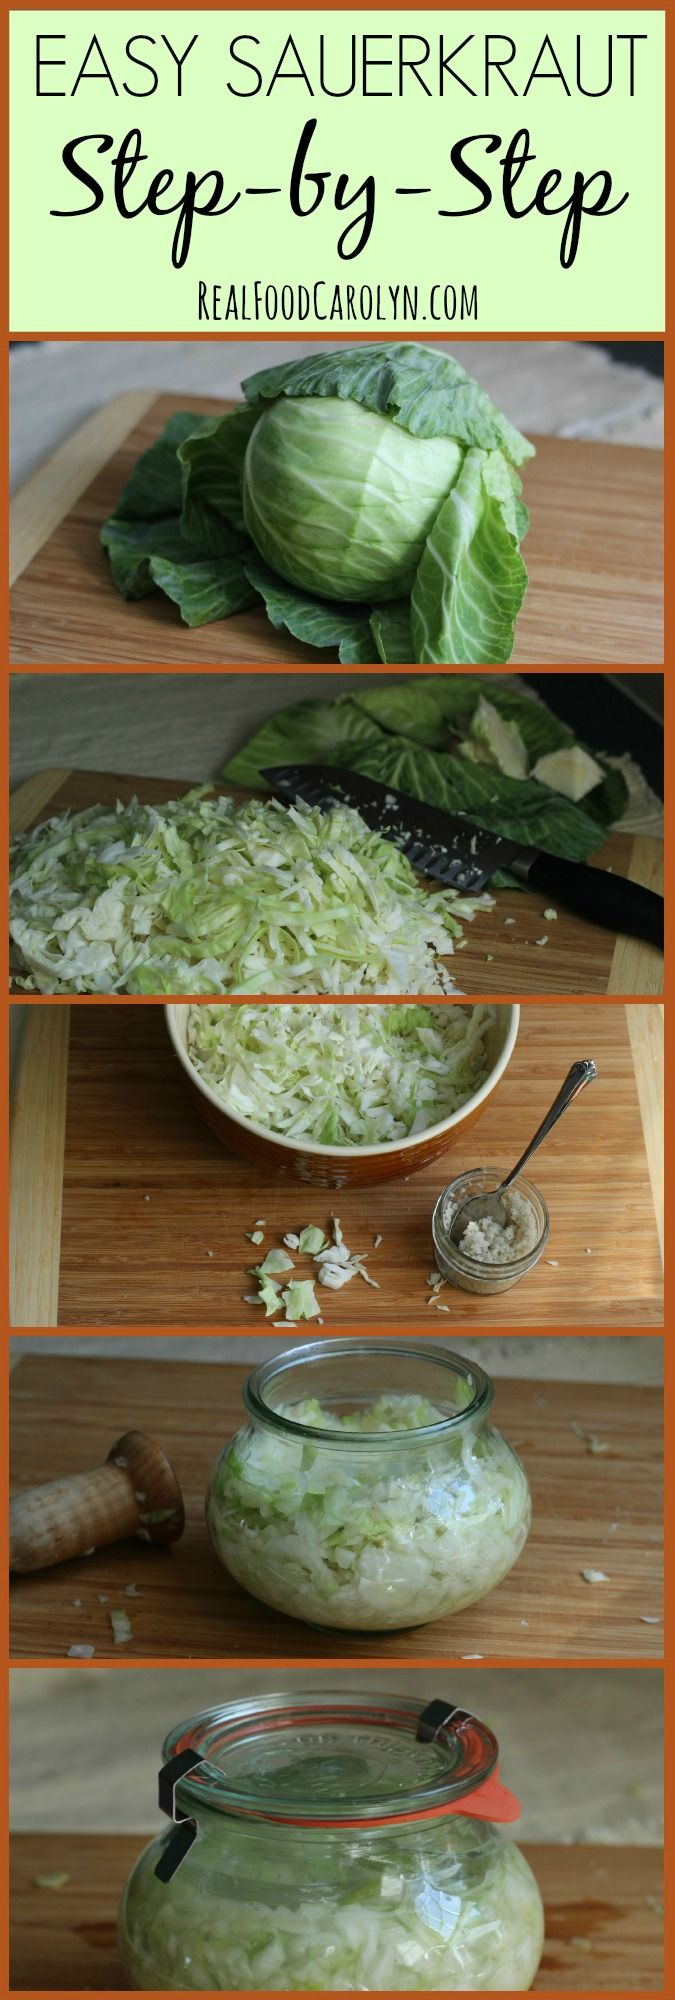 How to Make Sauerkraut … Step-by-Step! #probiotics #enzymes #TraditionalFood #WestonPrice #Paleo #digestion